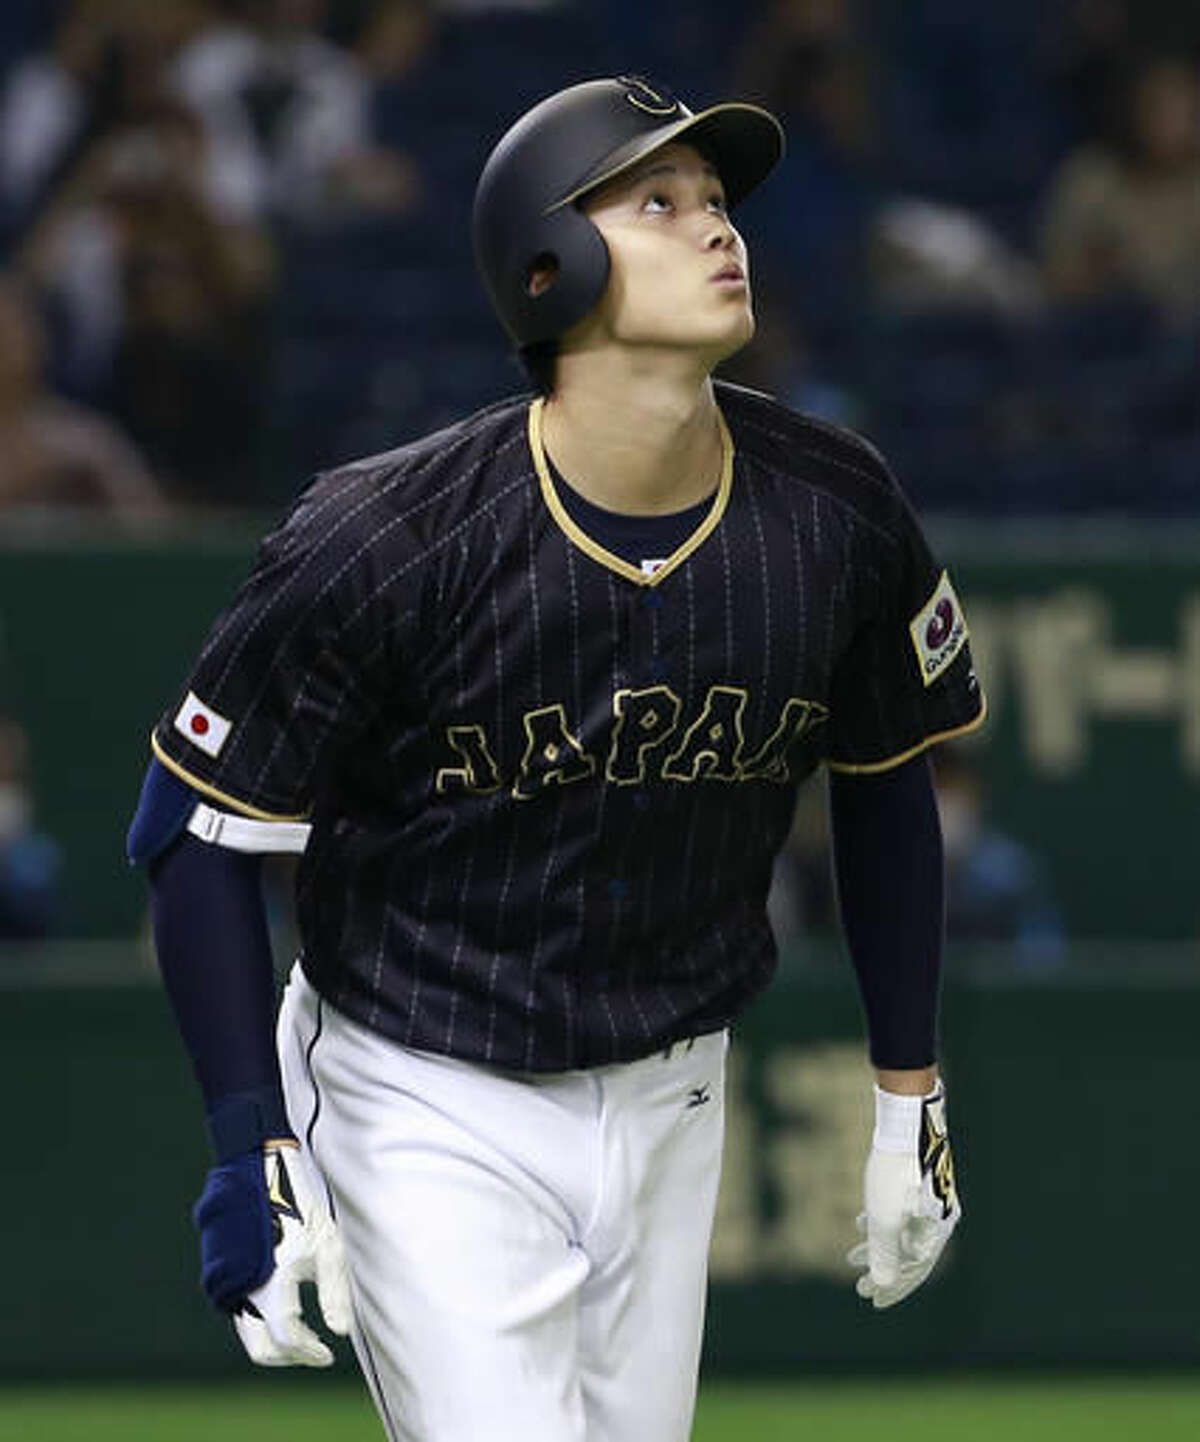 Japan's pinch hitter Shohei Otani watches the flight of his ground-rule double against the Netherlands in the seventh inning of their international exhibition series baseball game at Tokyo Dome in Tokyo, Sunday, Nov. 13, 2016. (AP Photo/Shizuo Kambayashi)